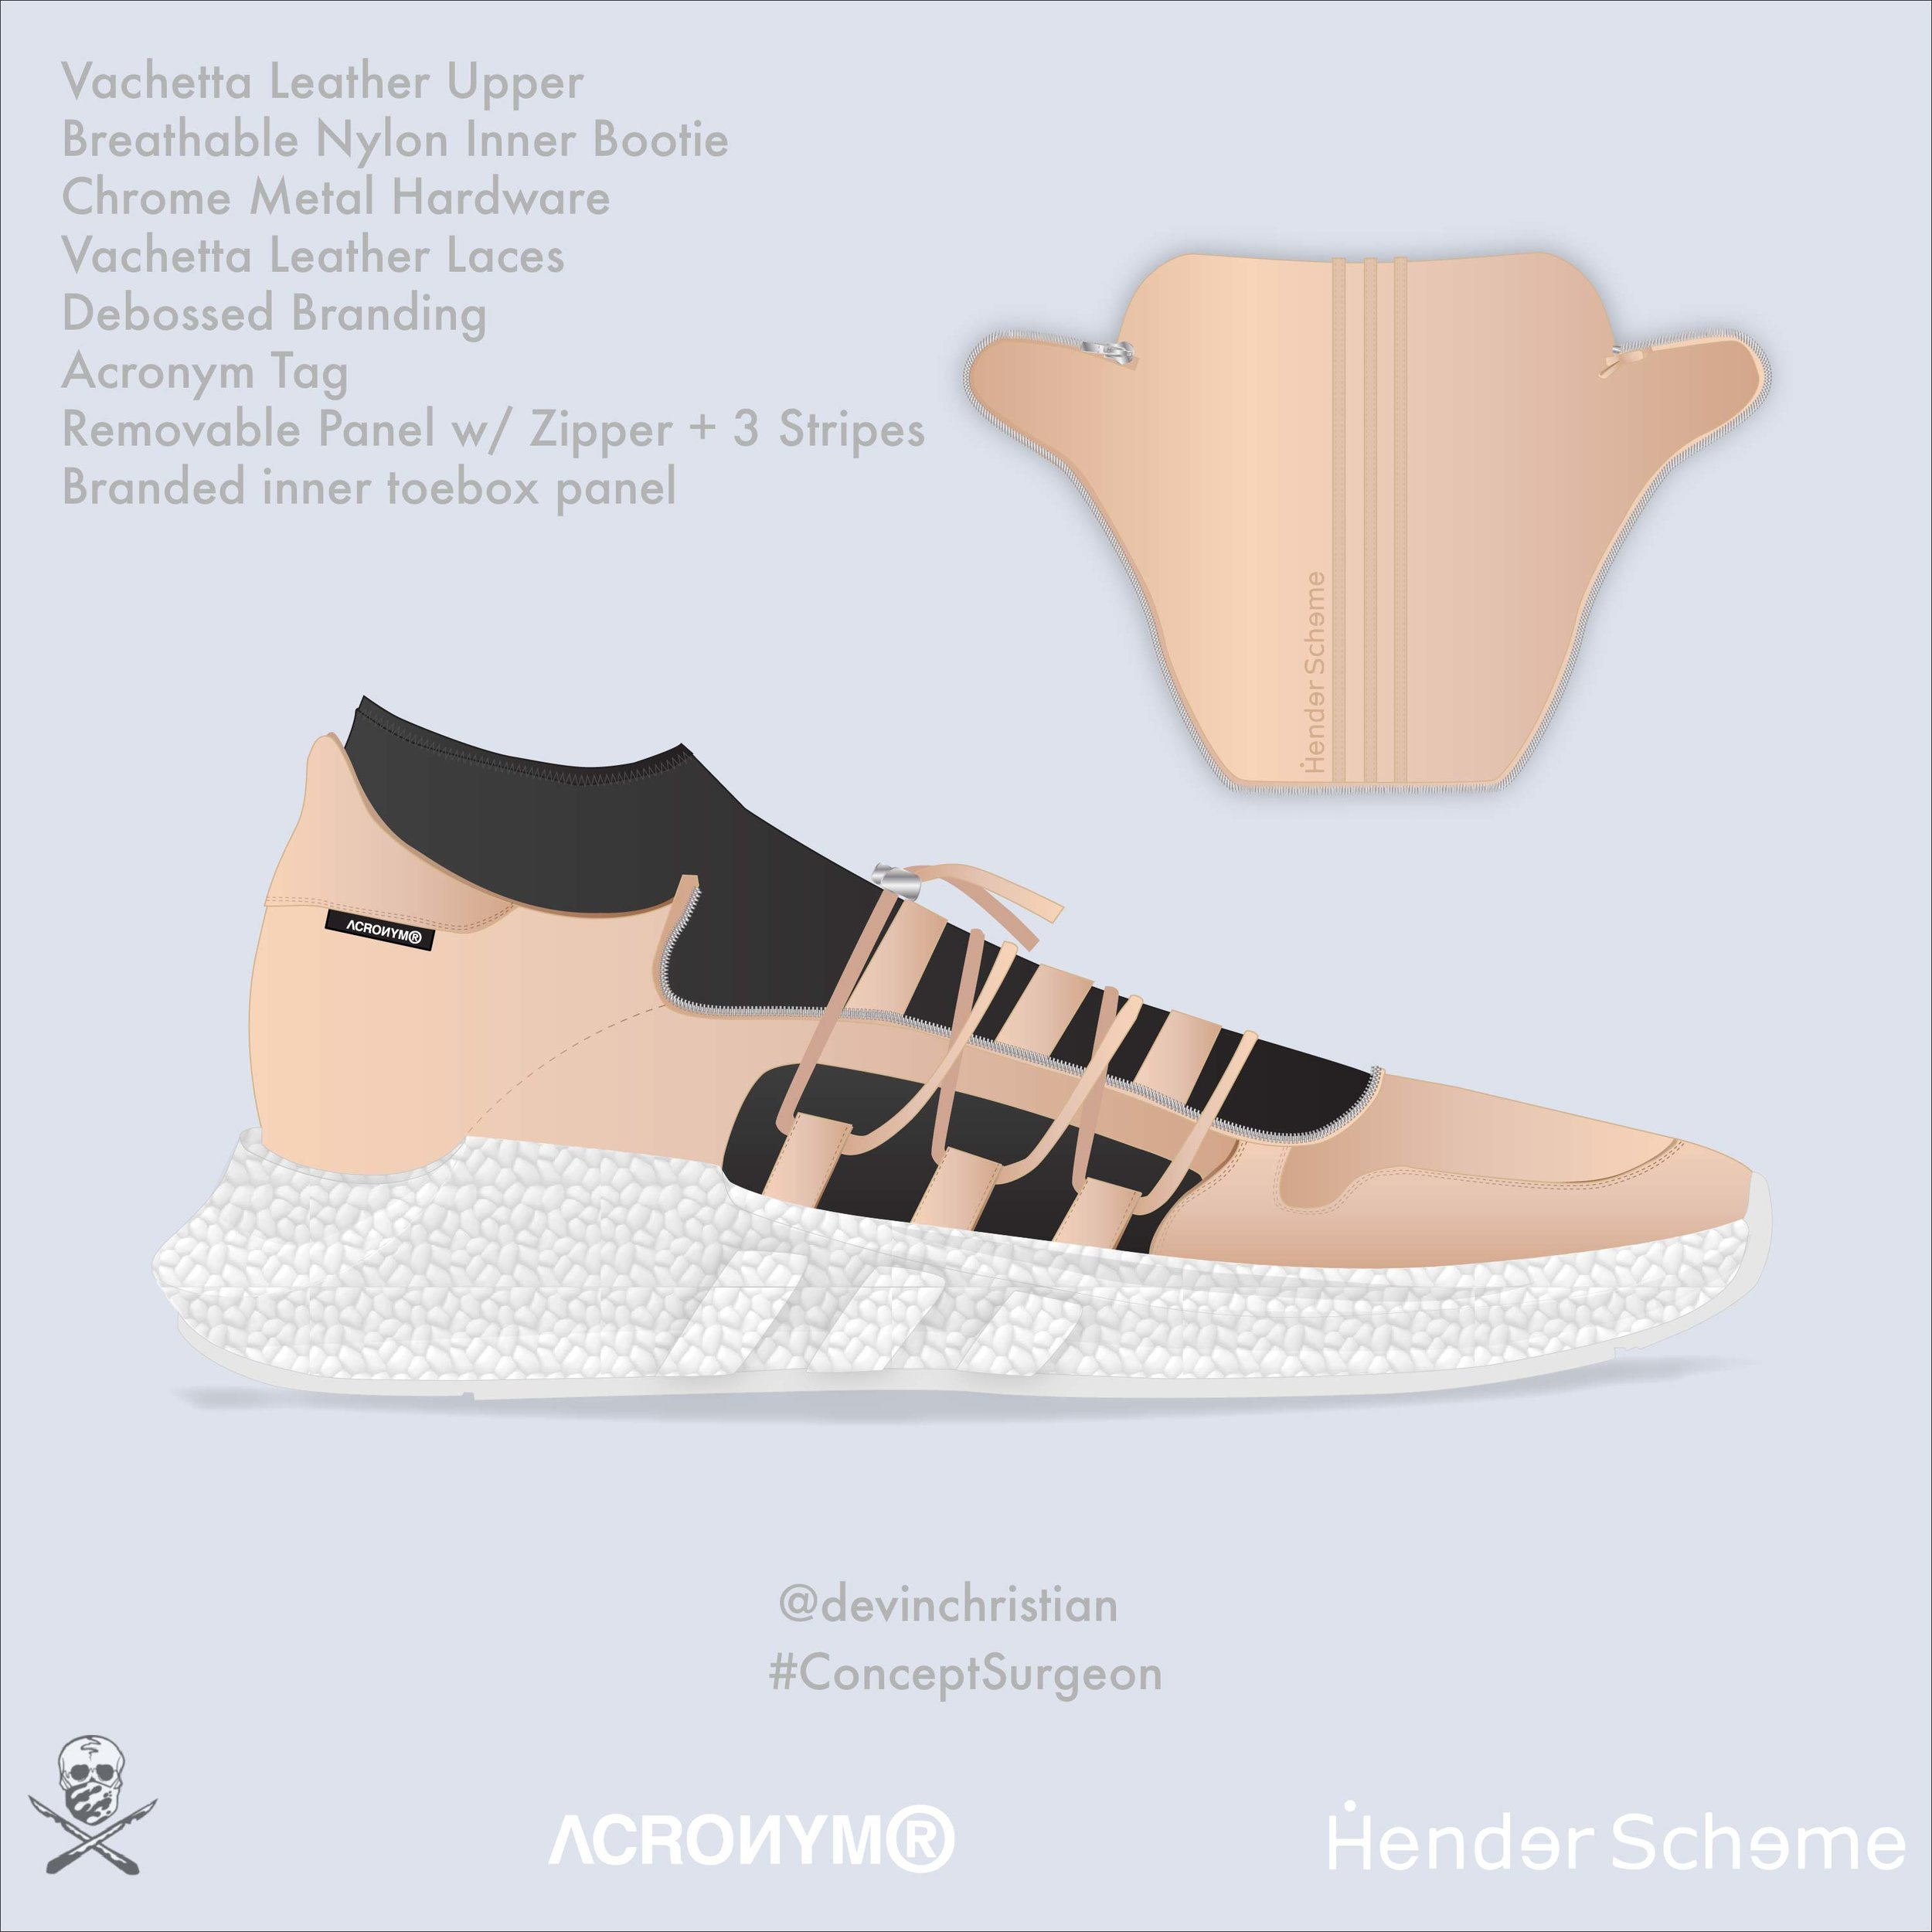 Shoe Surgeon HS Adidas Project-04.jpg